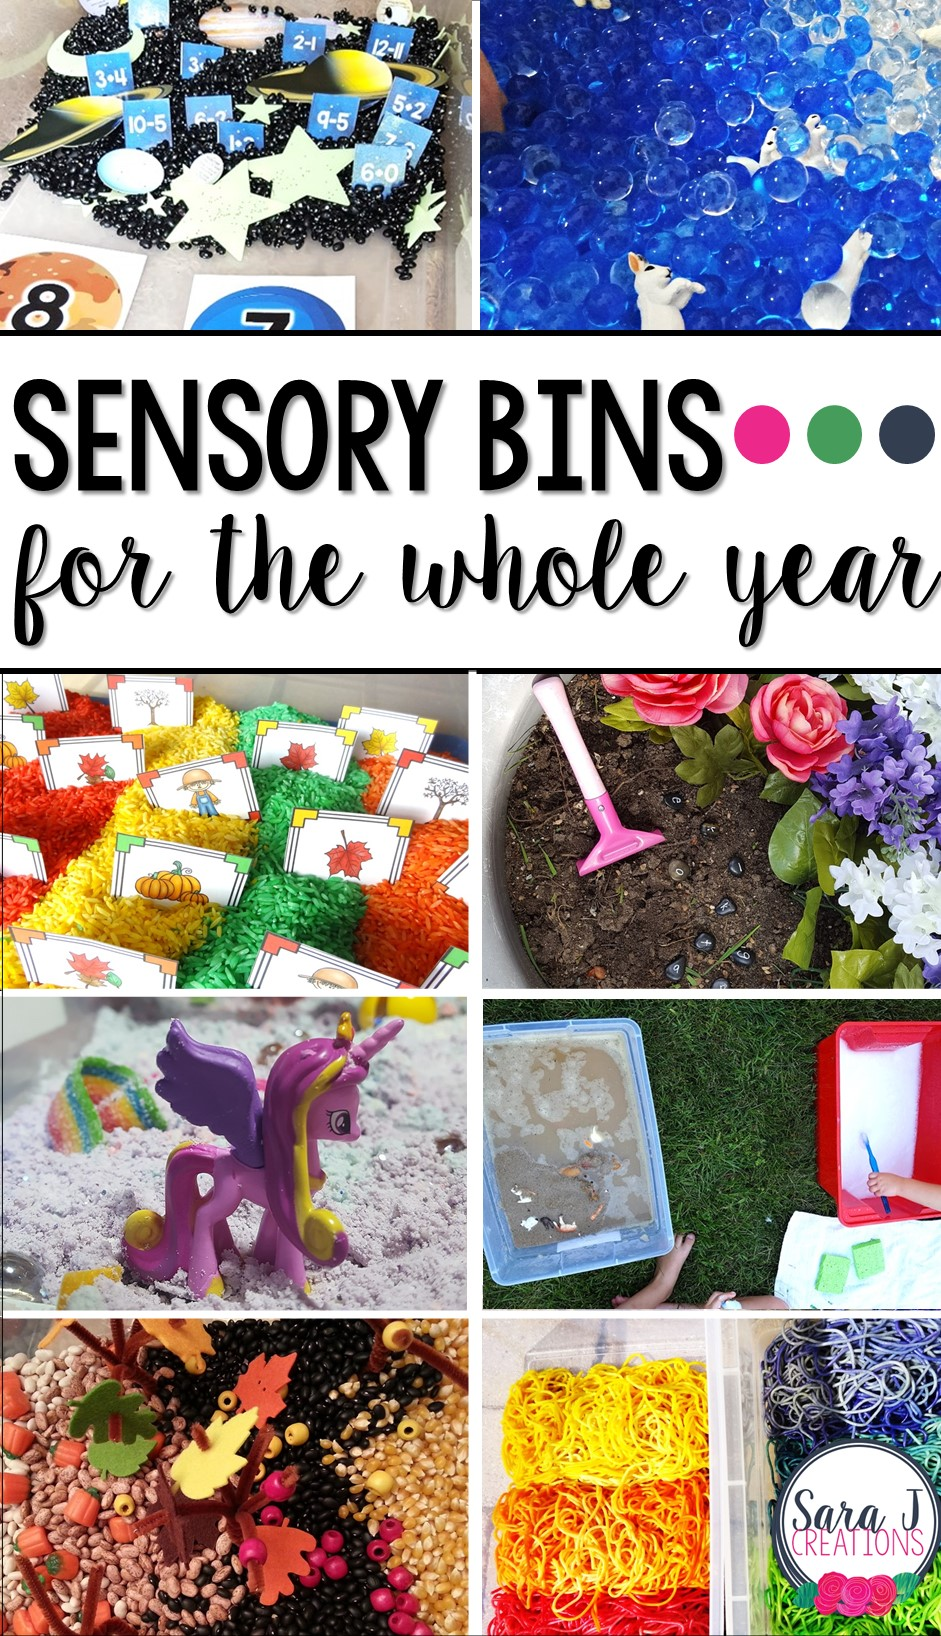 Sensory bin ideas for the whole year